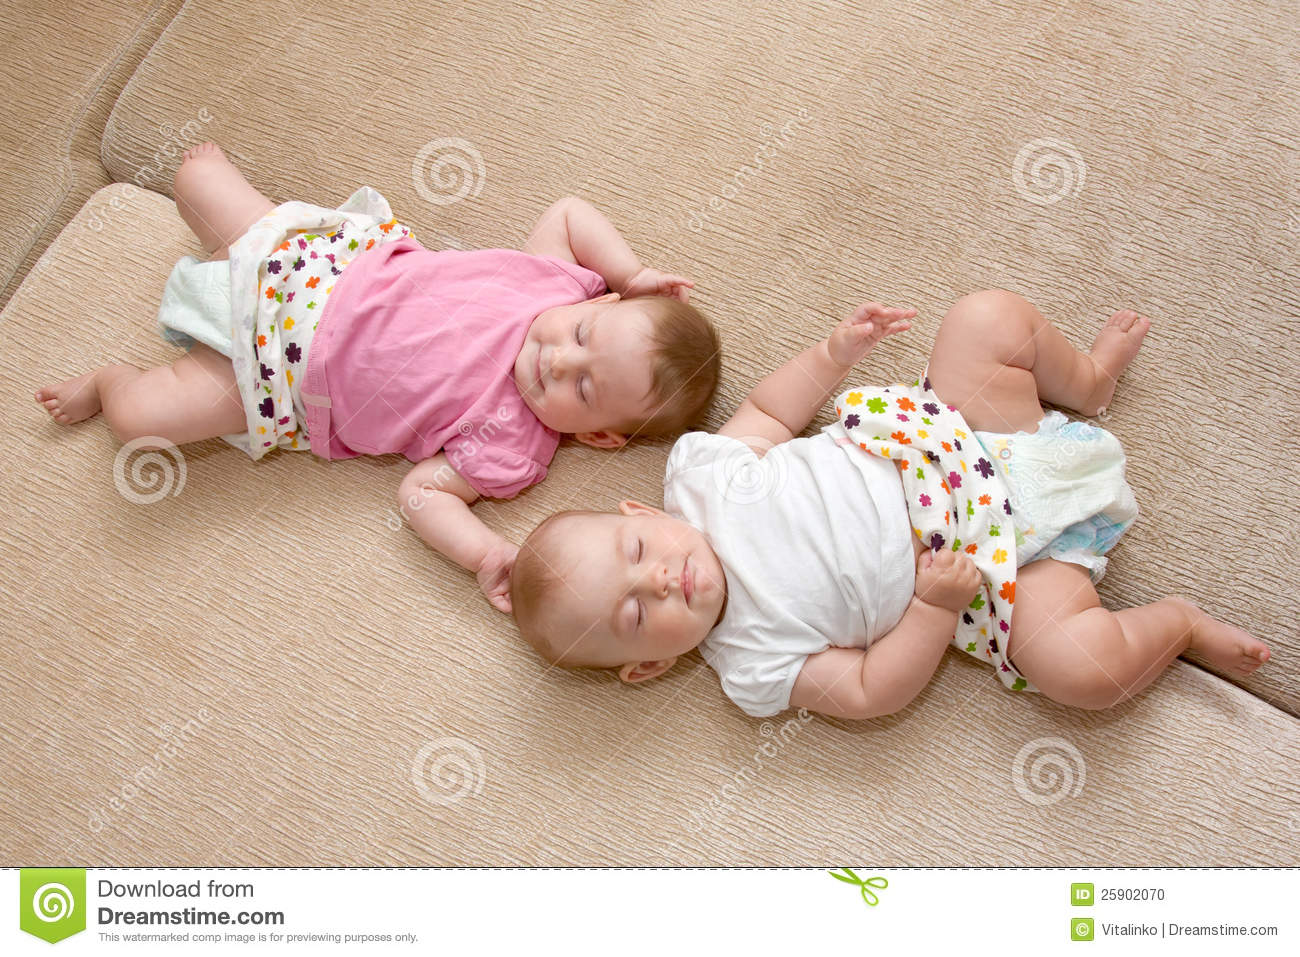 Cute Newborn Baby Girl Wallpapers Twins Baby Girls Sleeping Stock Photo Image Of Concept